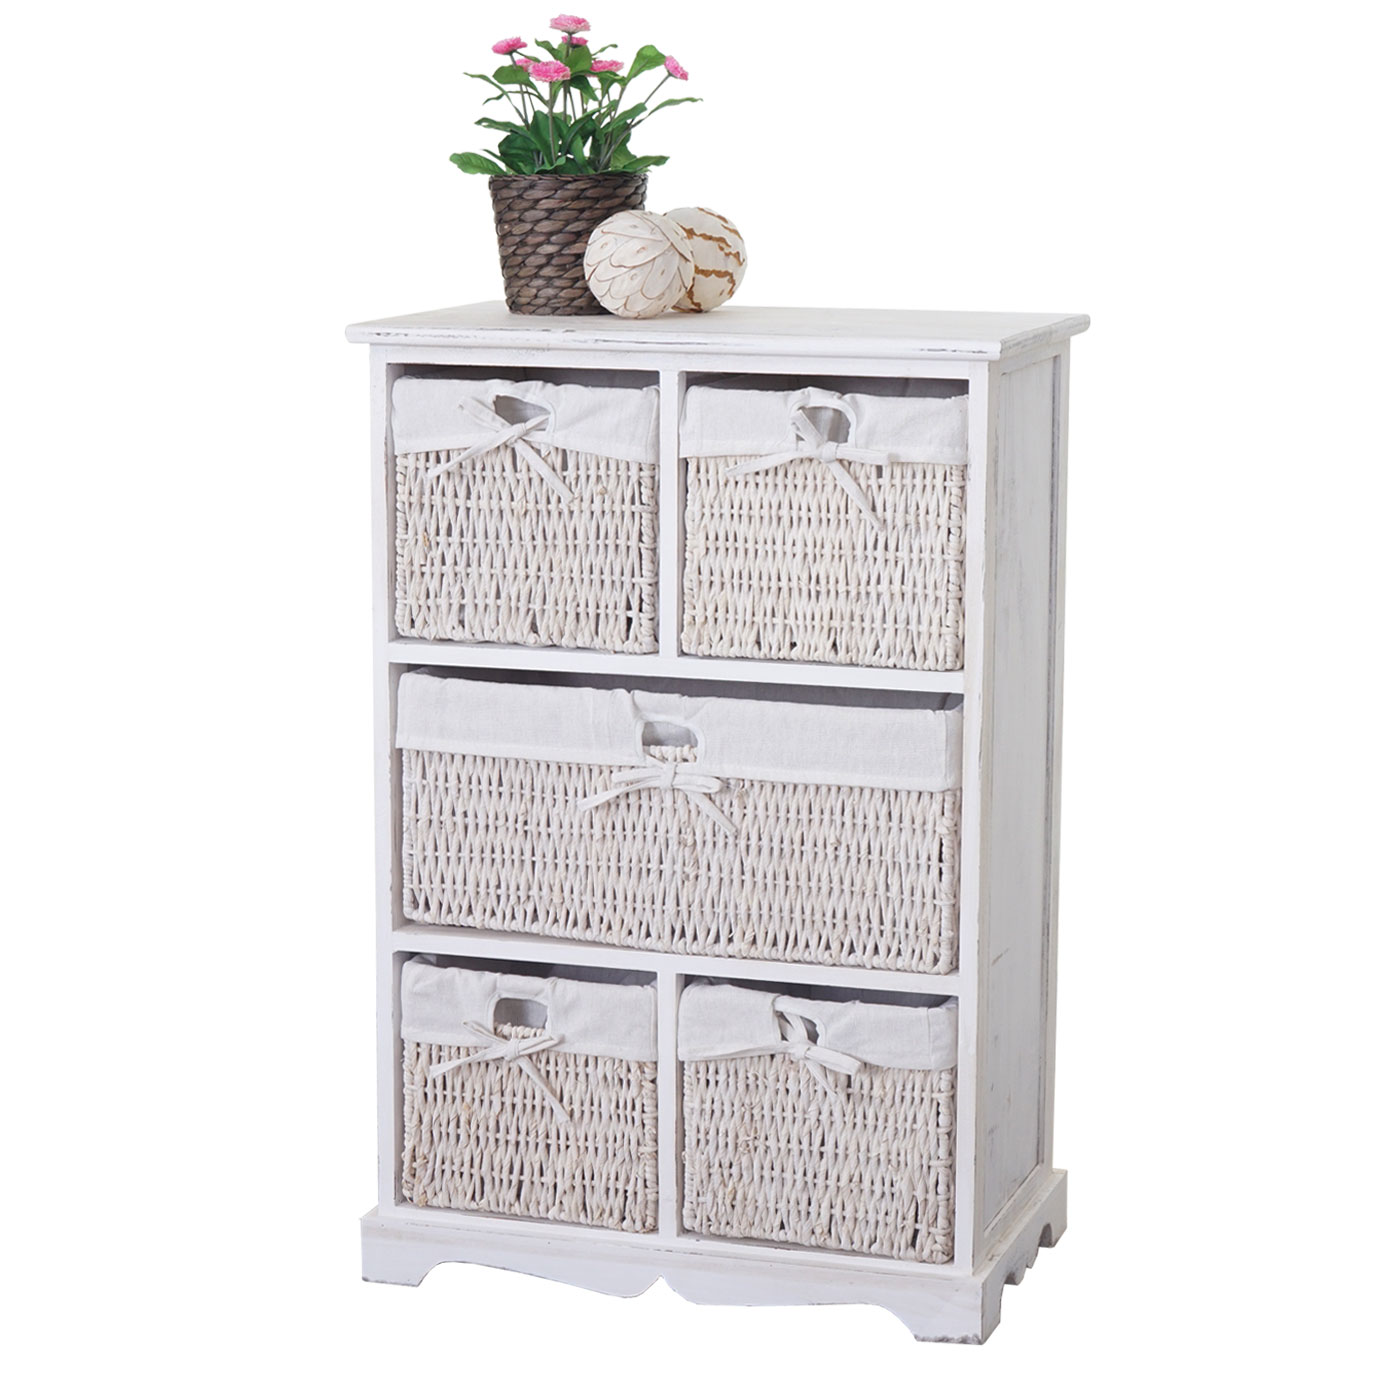 kommode dundee schubladenschrank shabby look vintage 90x60x30cm wei. Black Bedroom Furniture Sets. Home Design Ideas